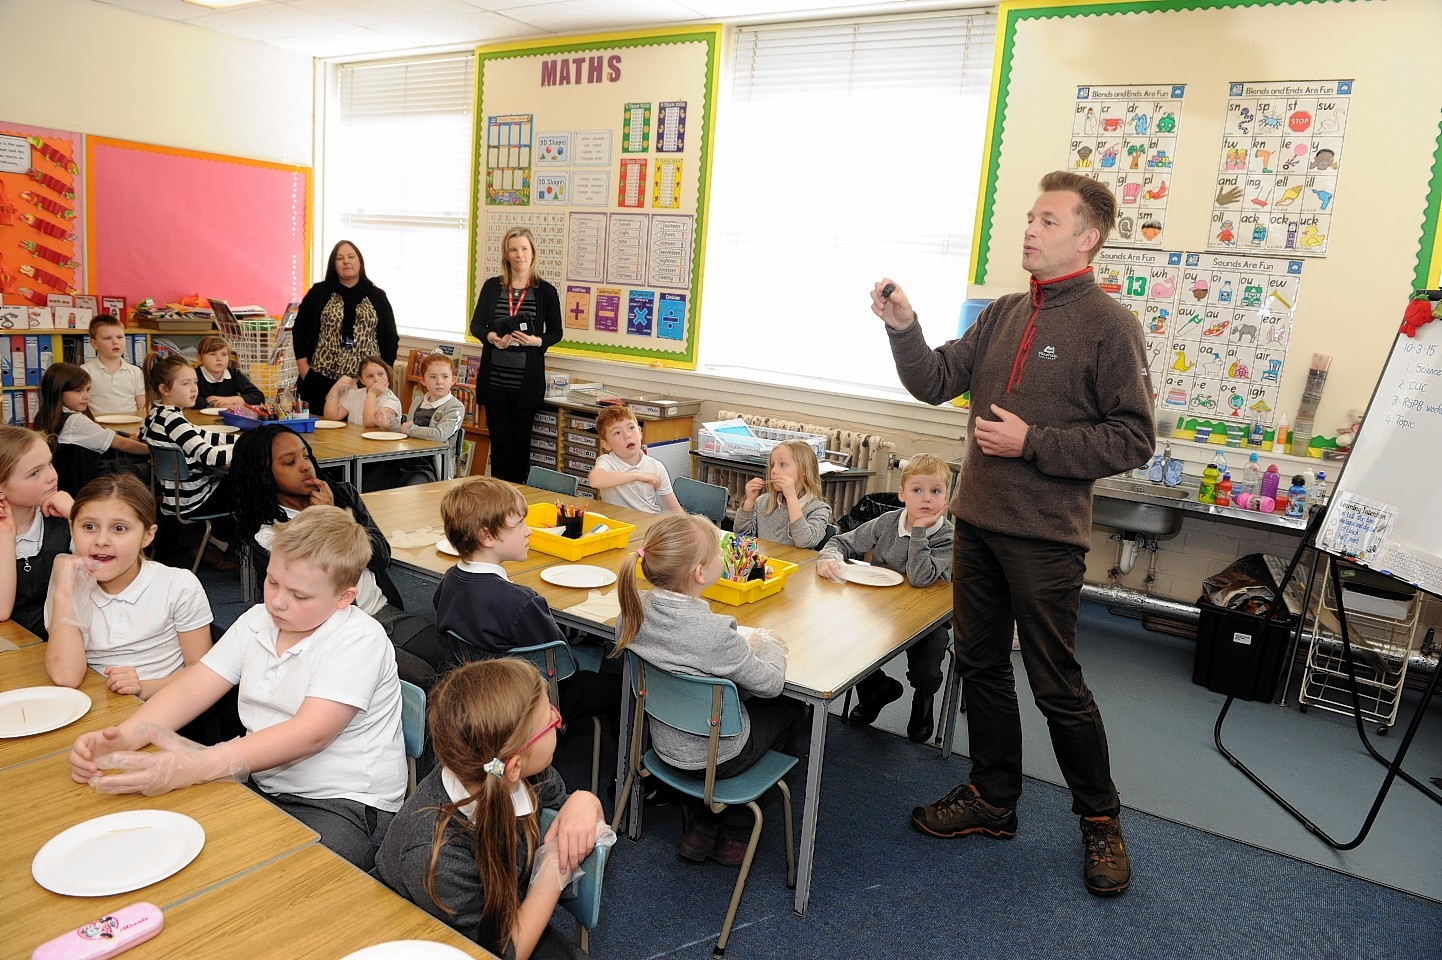 TV presenter and naturalist Chris Packham visits Abbotswell Primary School to highlight what Aberdeen and District RSPB are doing to connect children with nature. Part of the group's 40th anniversary.